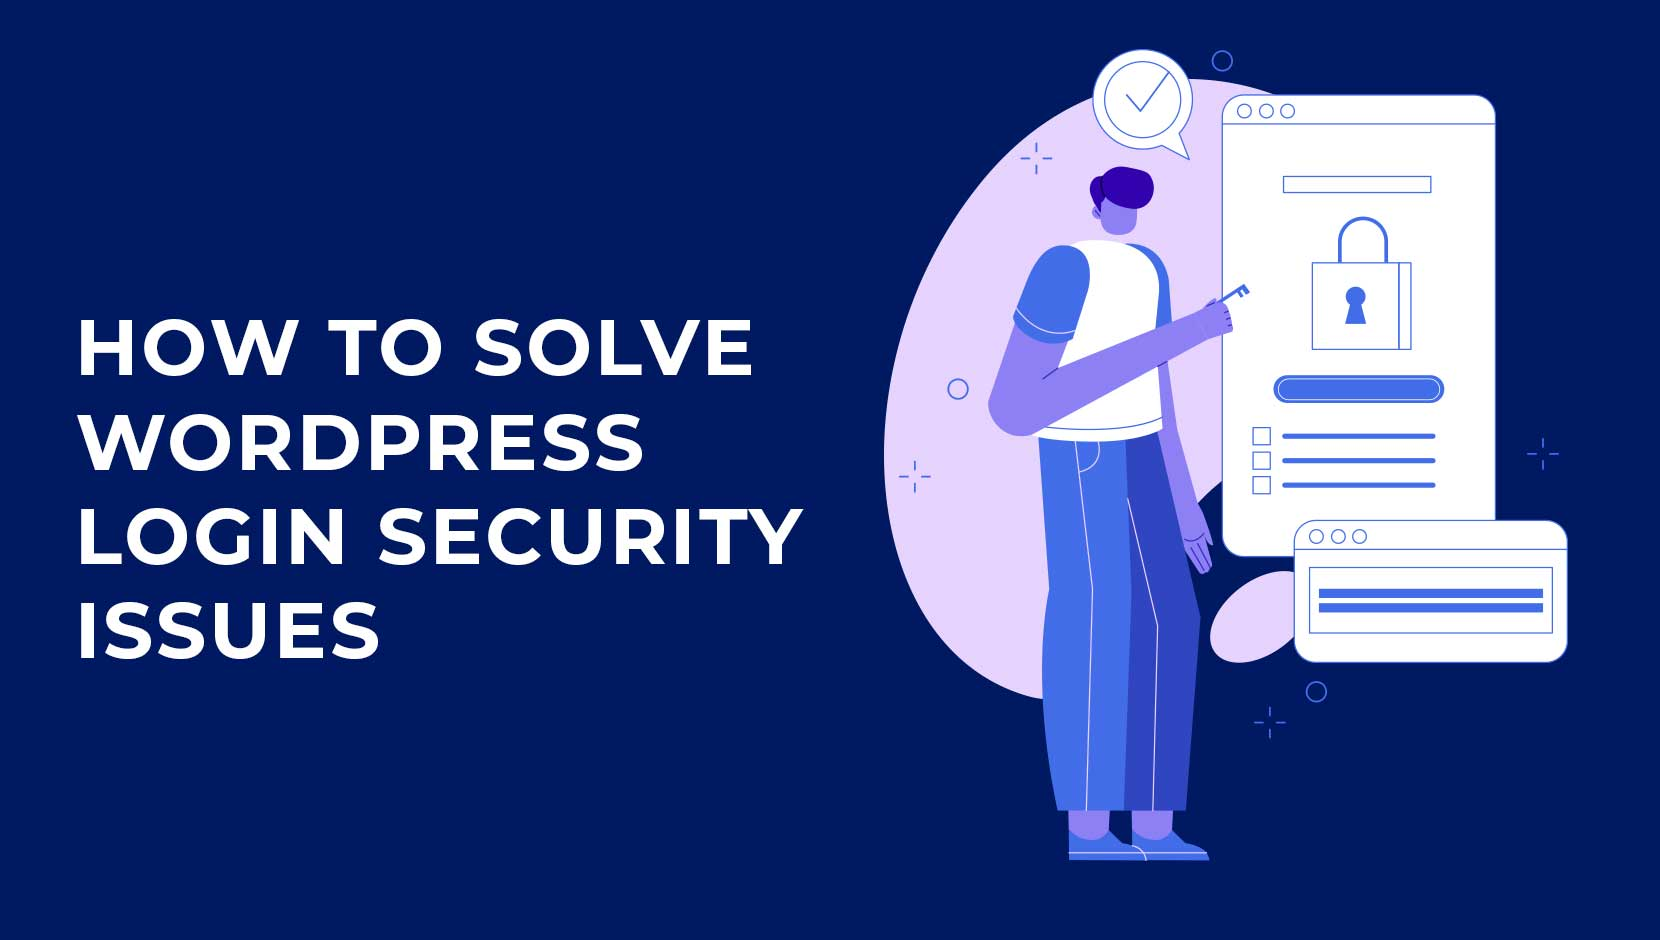 How to Solve WordPress Login Security Issues